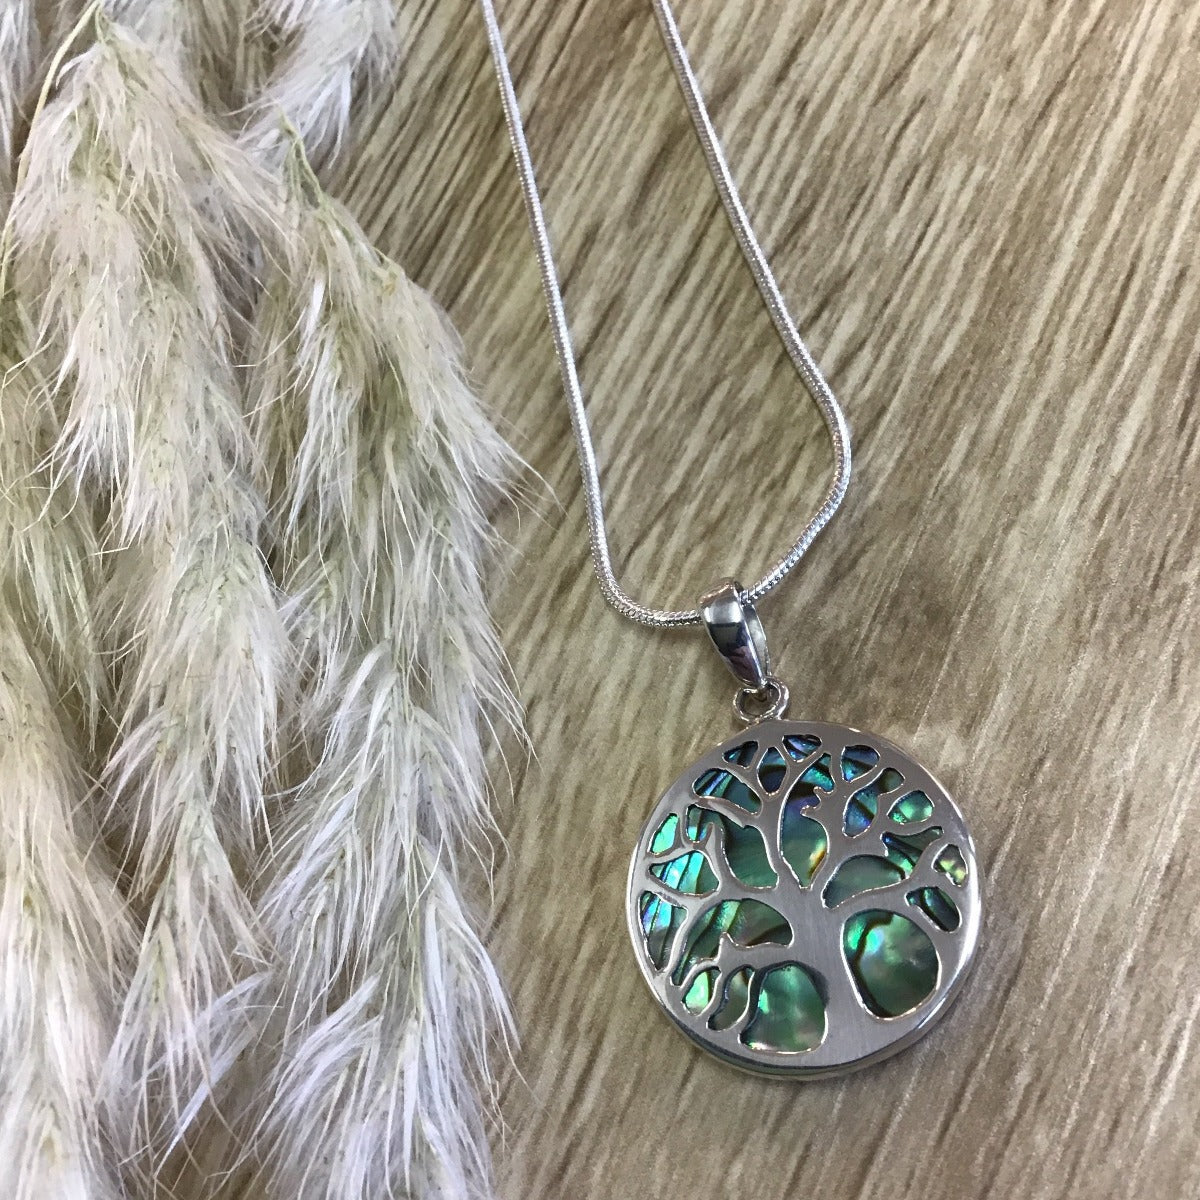 jade kiwi kaikoura sterling silver necklace pendant tree of life paua shell